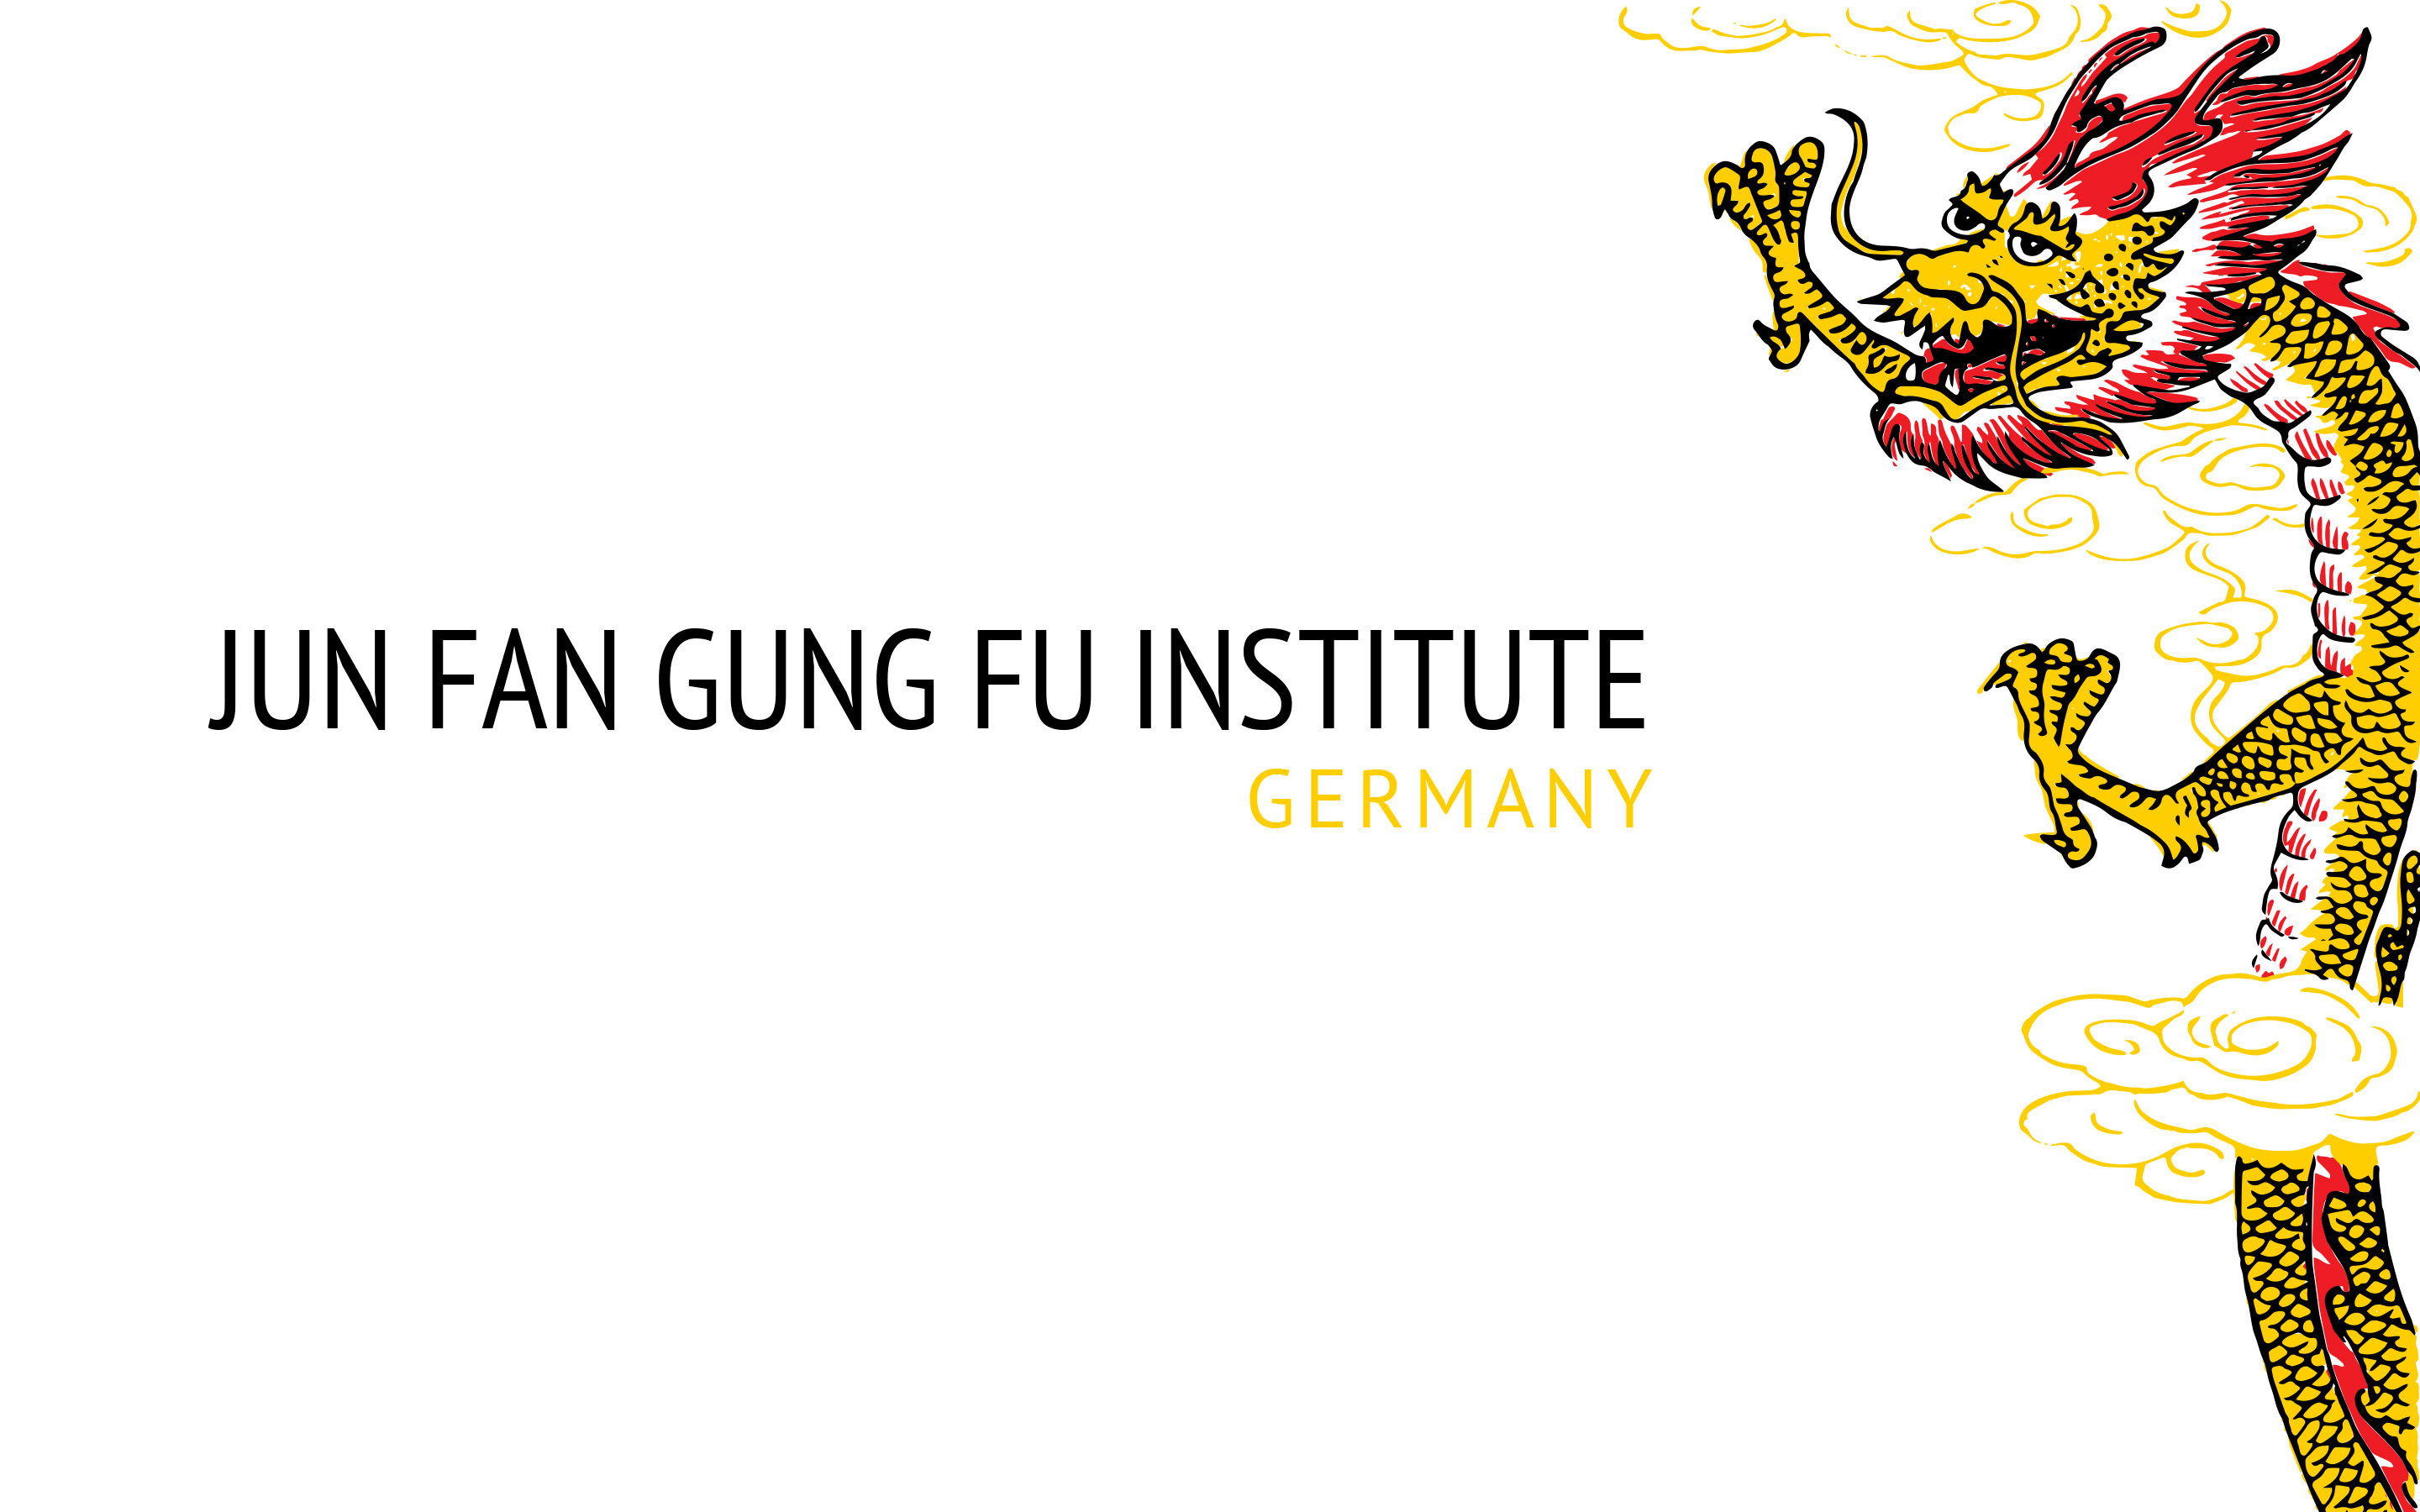 Jun Fan Gung Fu Institute Germany